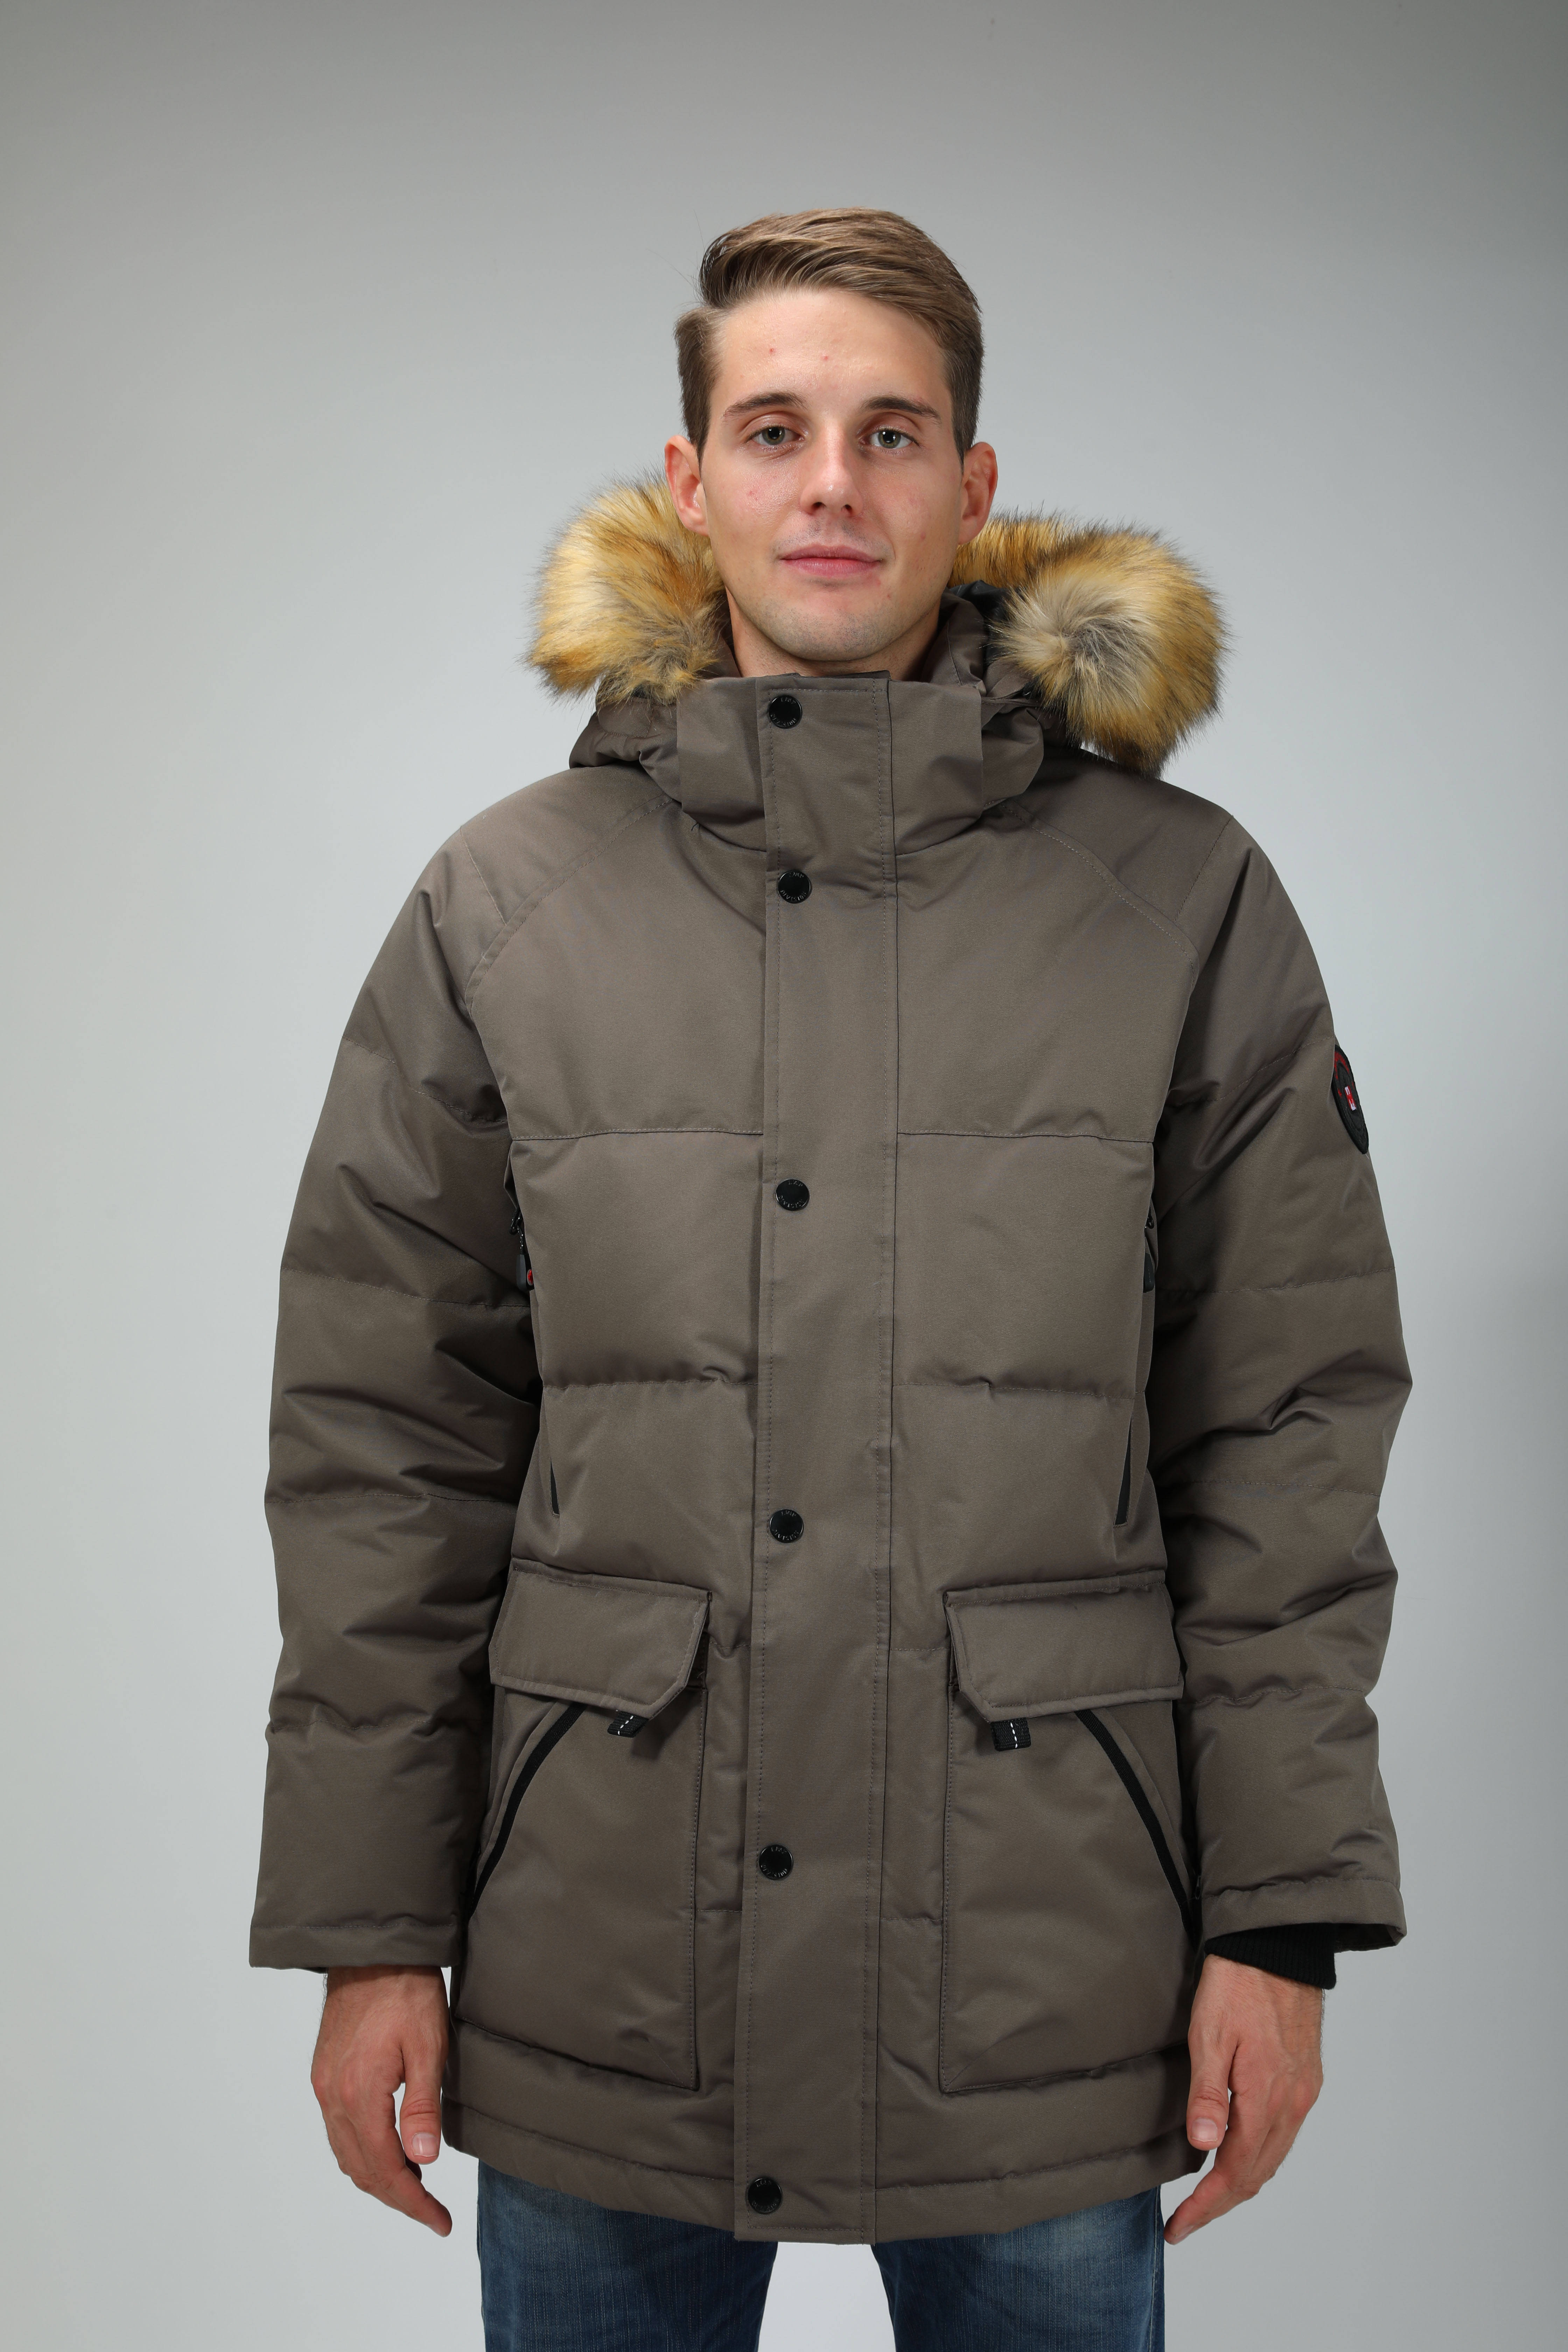 Warm Winter Parka LOOP DIVISION High Quality Winter Parka Warm Outerwear Men Parka With Detachable Fur And Hood Trending 2020